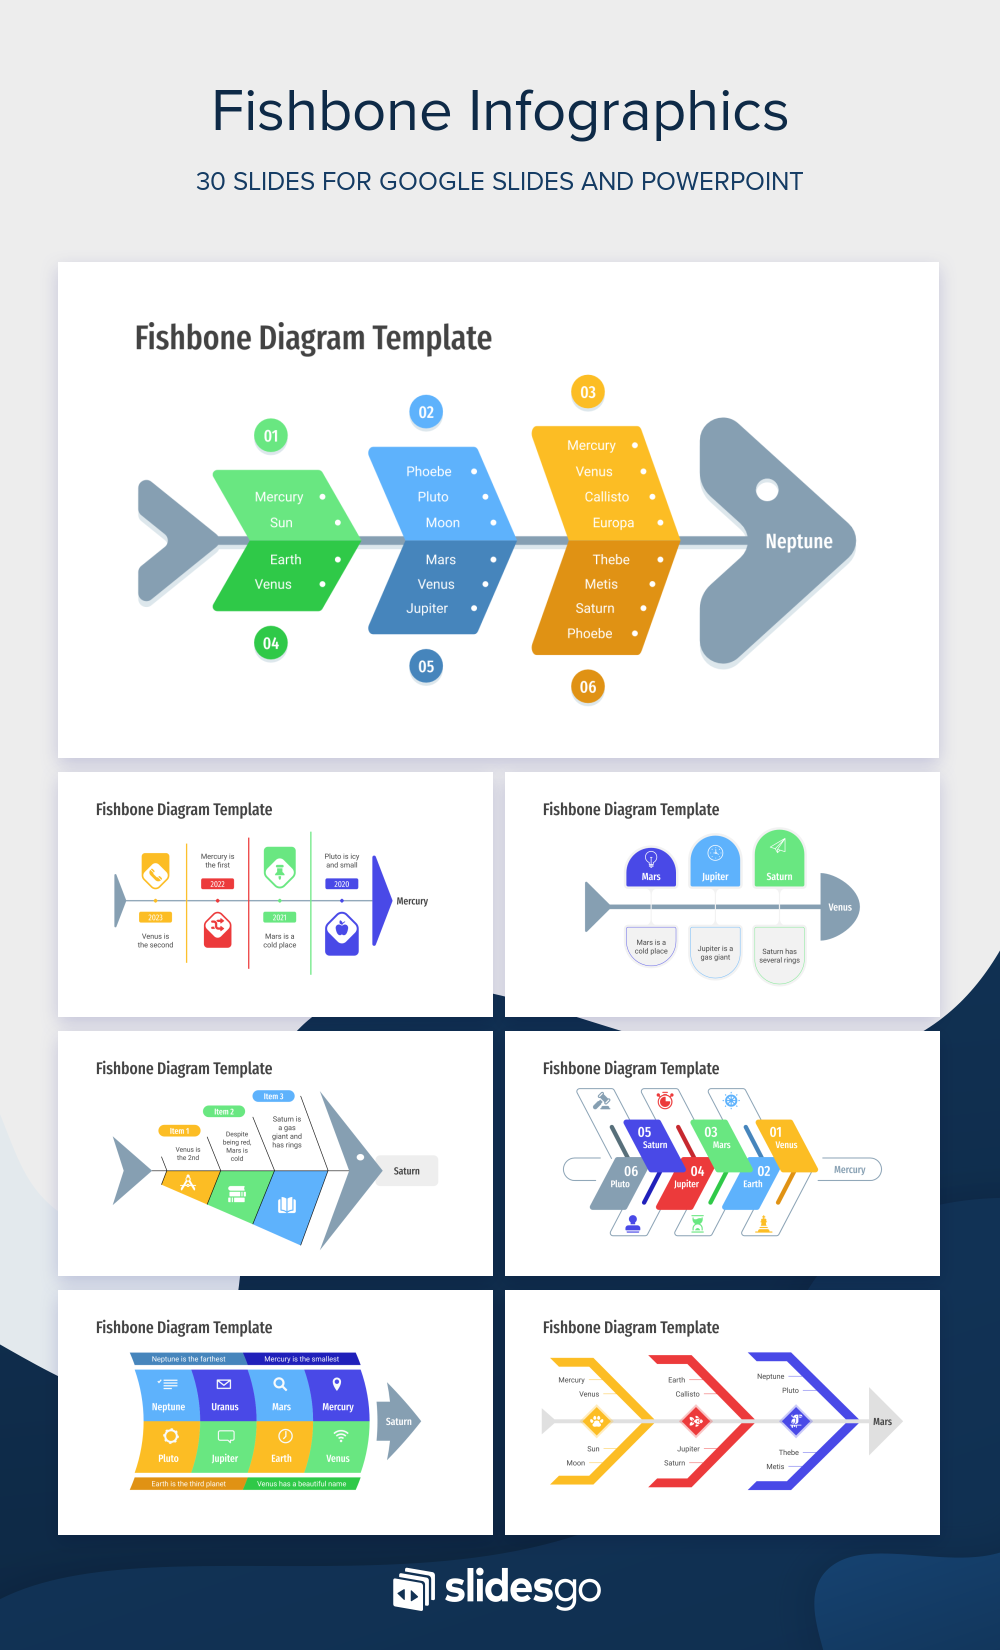 Free Fishbone Infographics For Google Slides And Powerpoint